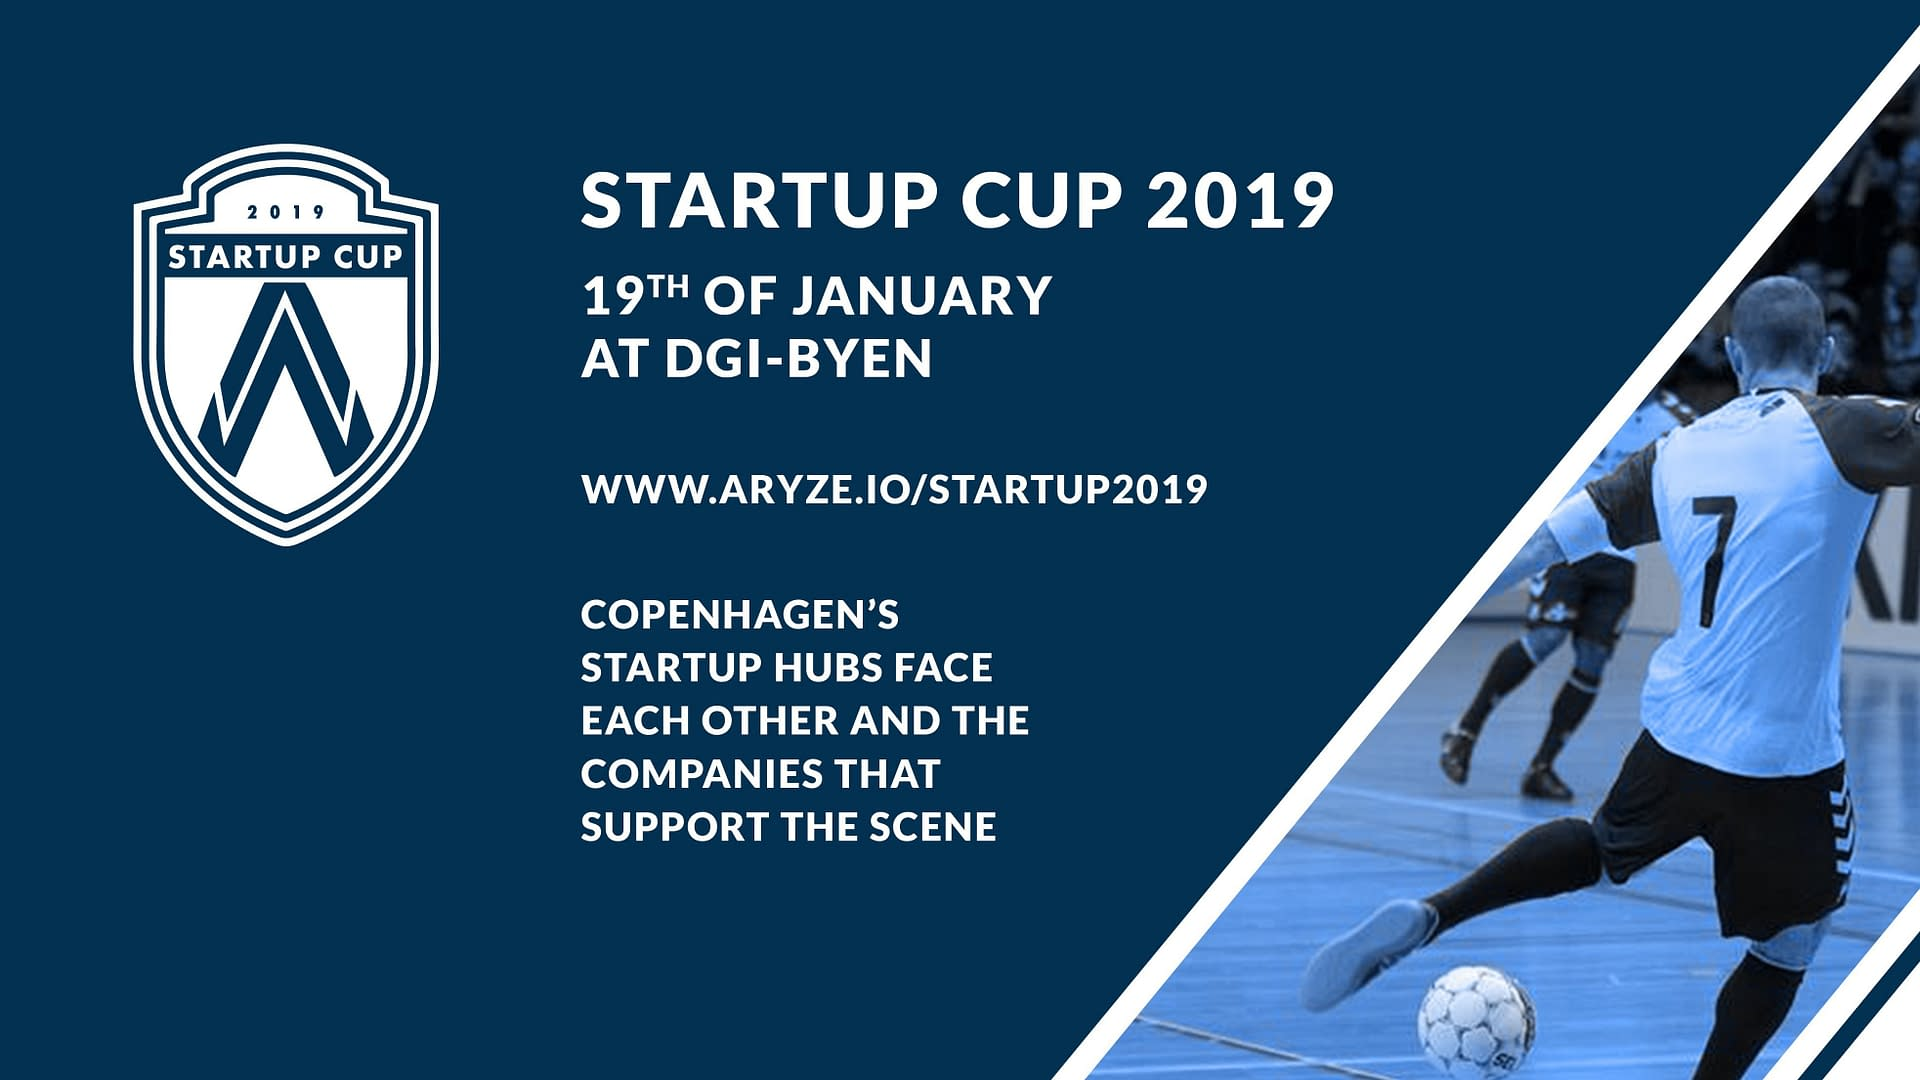 Startup Cup 2019